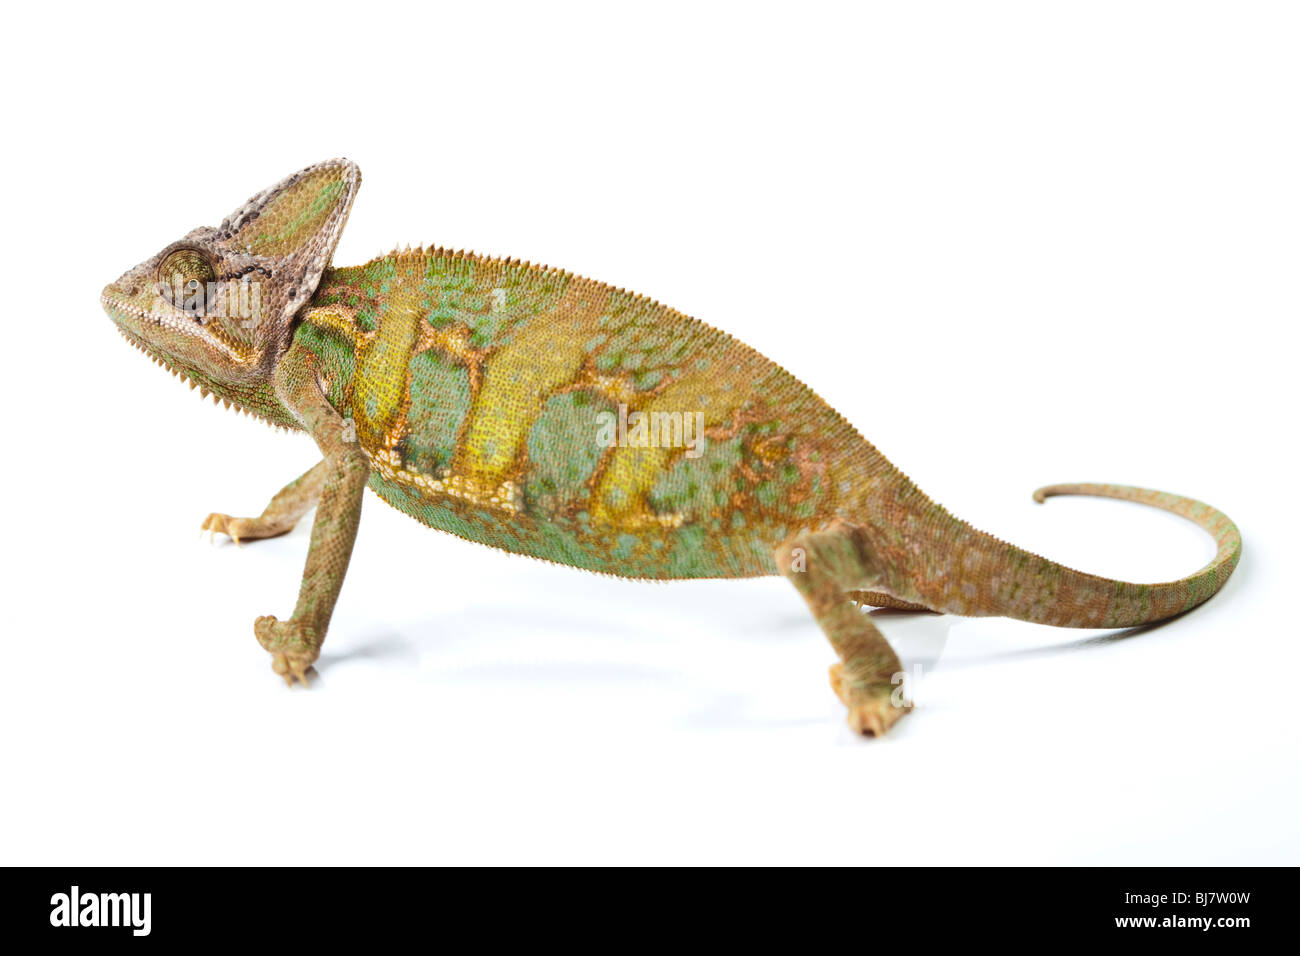 Beautiful big chameleon sitting on a white background - Stock Image